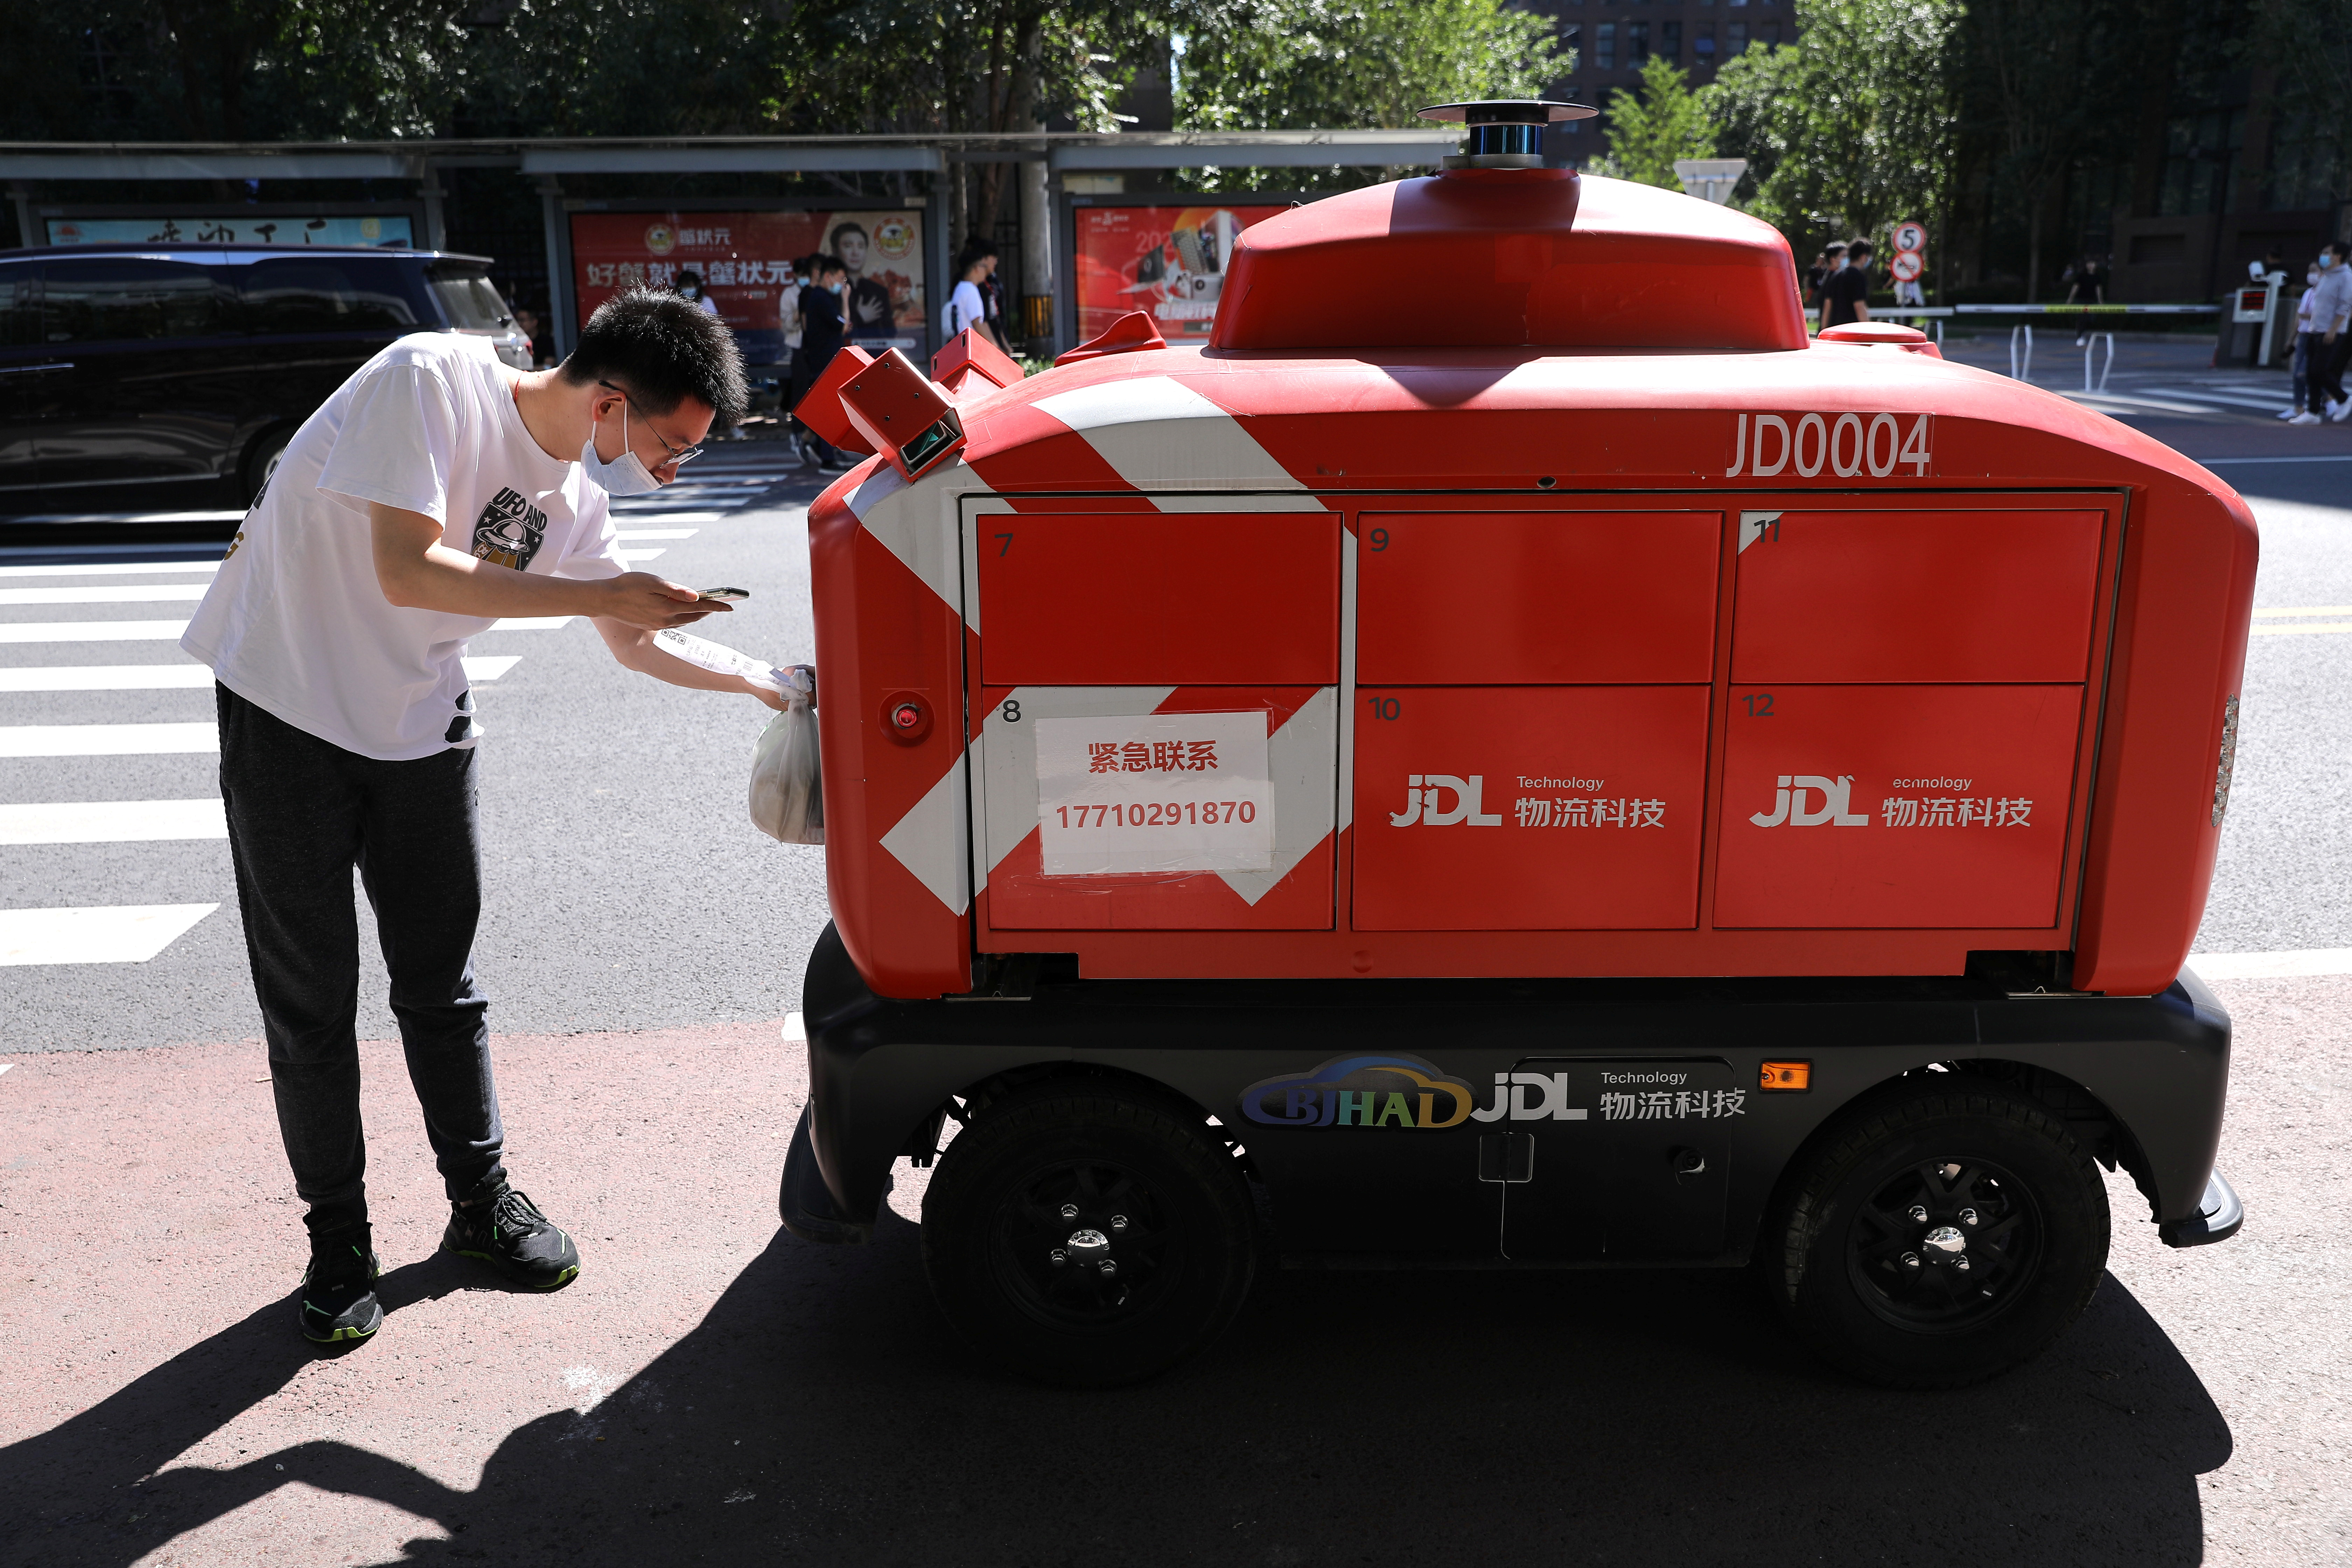 A person inputs a code on a screen of an autonomous delivery vehicle by JD Logistics, the delivery arm of JD.com, as he tries to pick up goods, in Beijing, China September 22, 2021. Picture taken September 22, 2021. REUTERS/Tingshu Wang